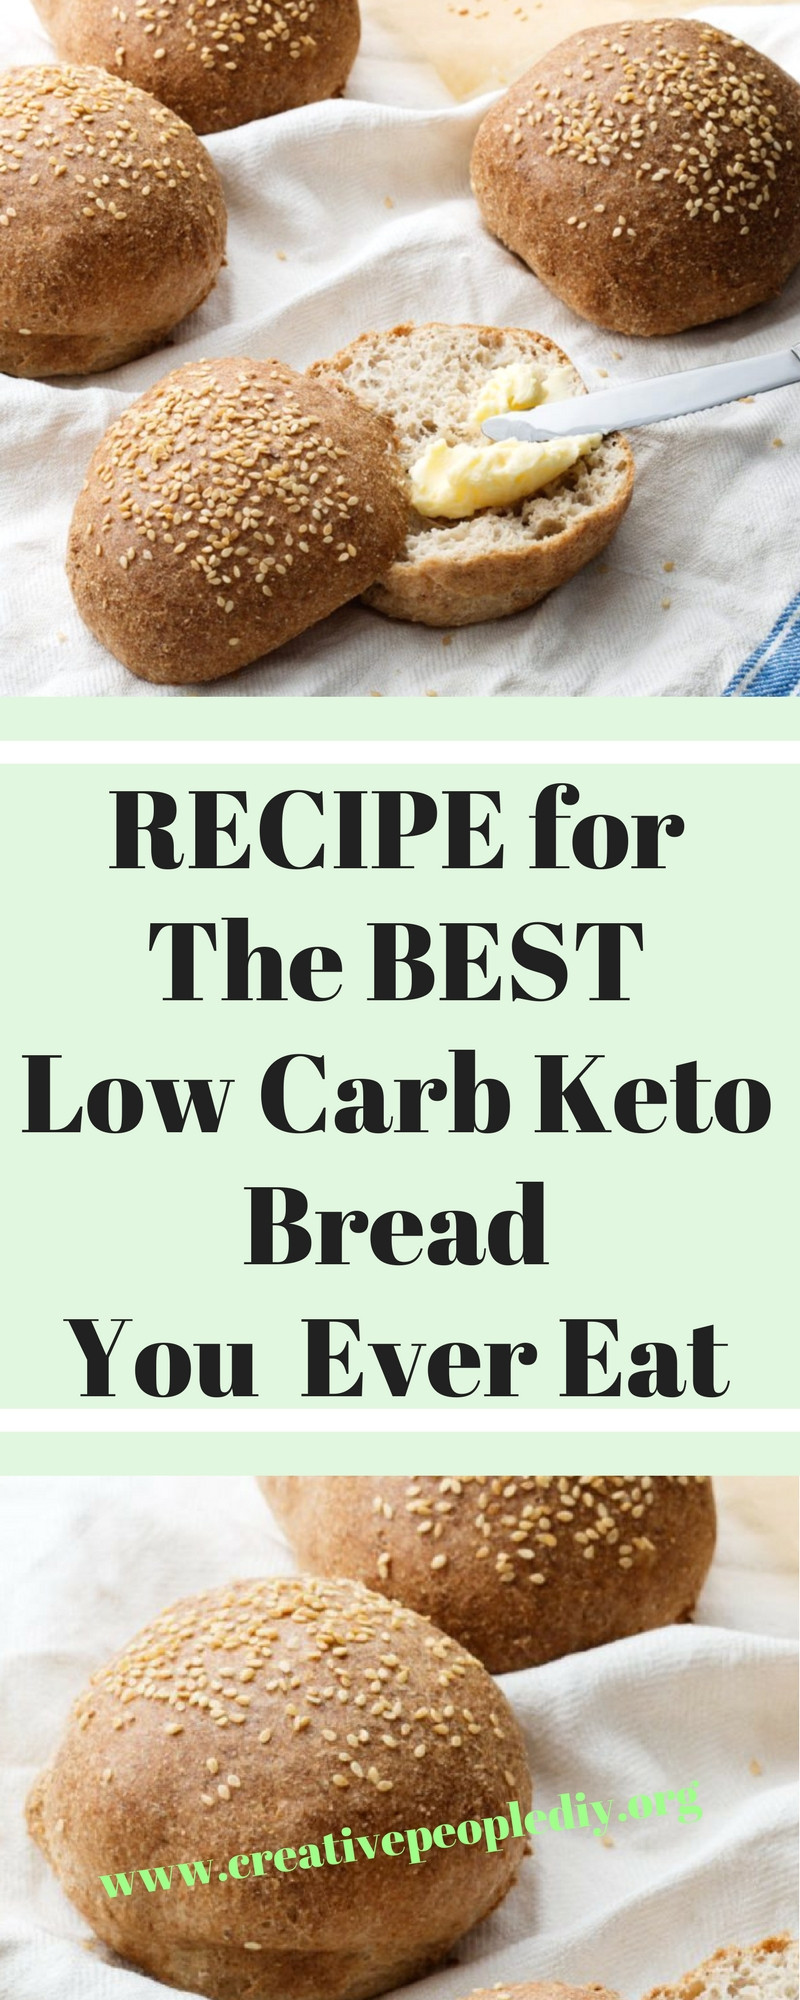 Best Low Carb Recipes Ever  RECIPE for The BEST Low Carb Keto Bread You Will Ever Eat